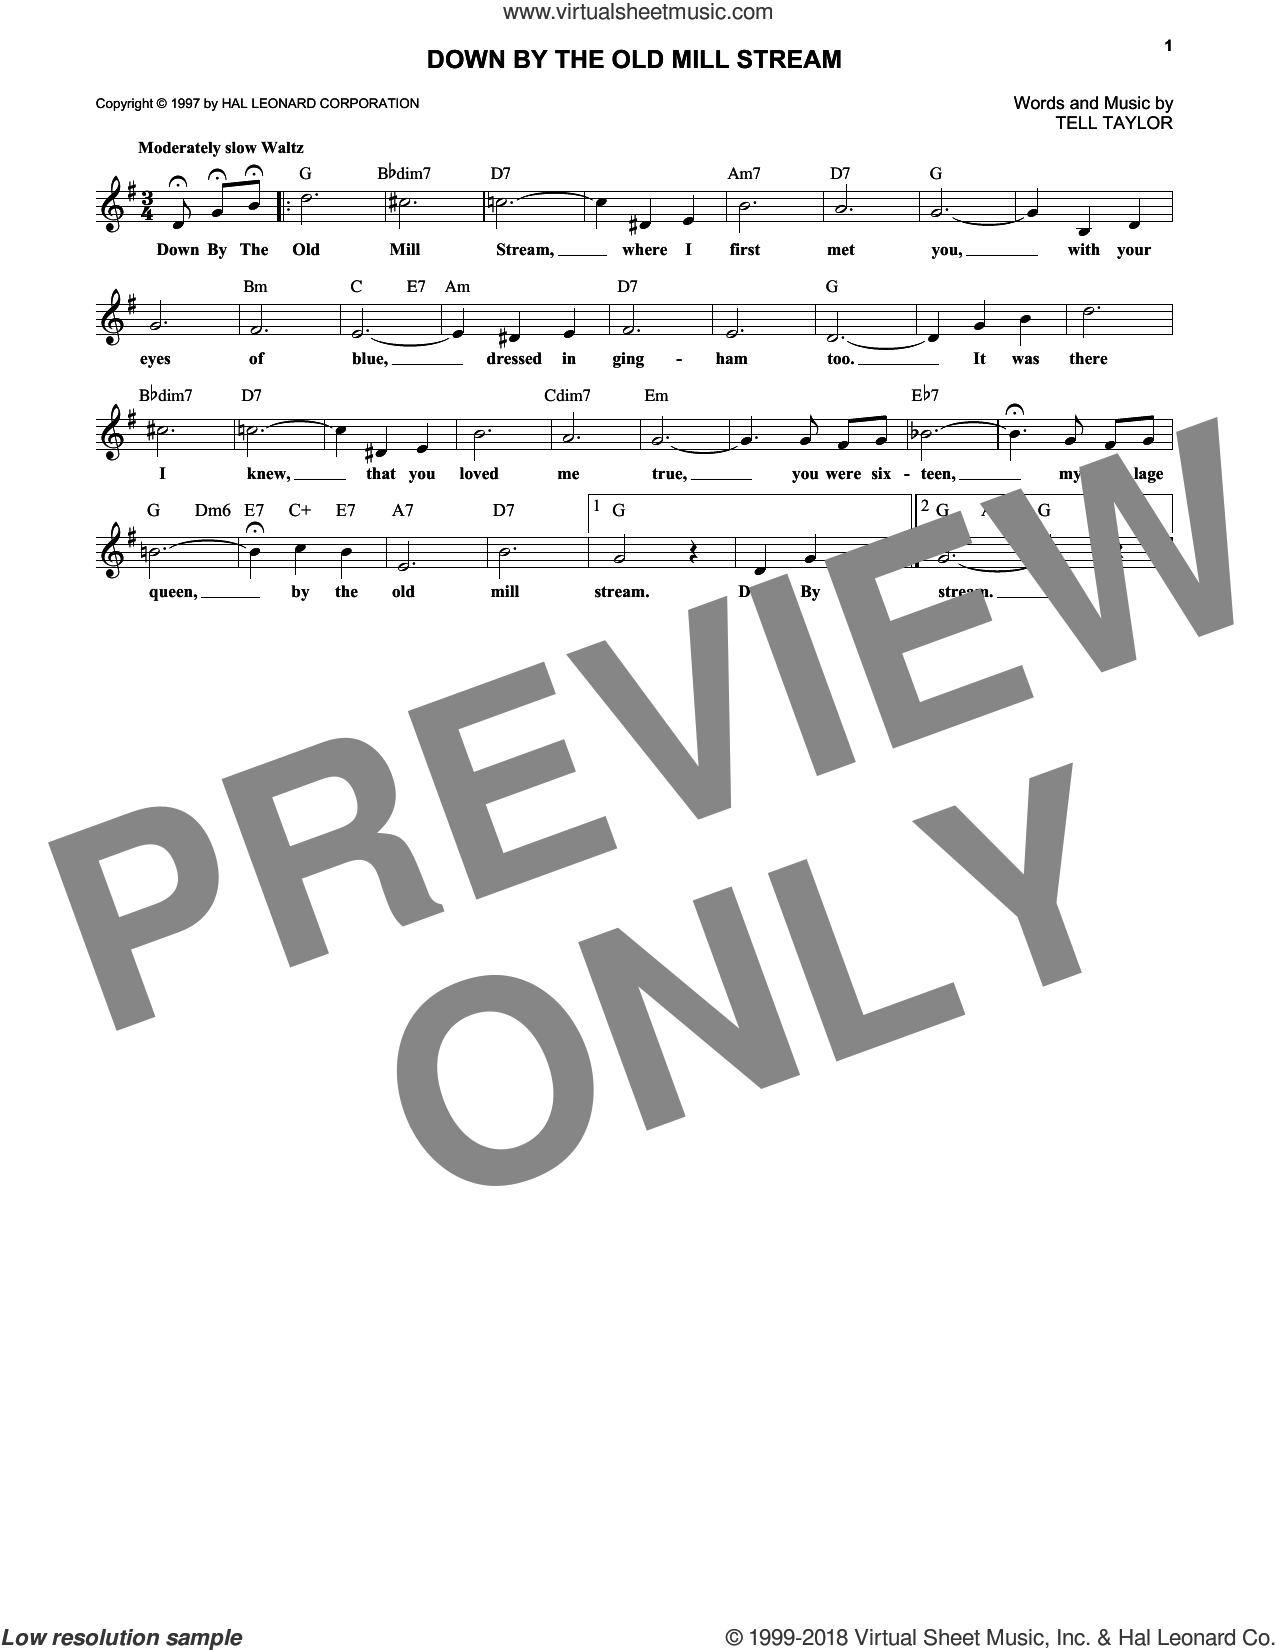 Down By The Old Mill Stream sheet music for voice and other instruments (fake book) by Tell Taylor, intermediate skill level